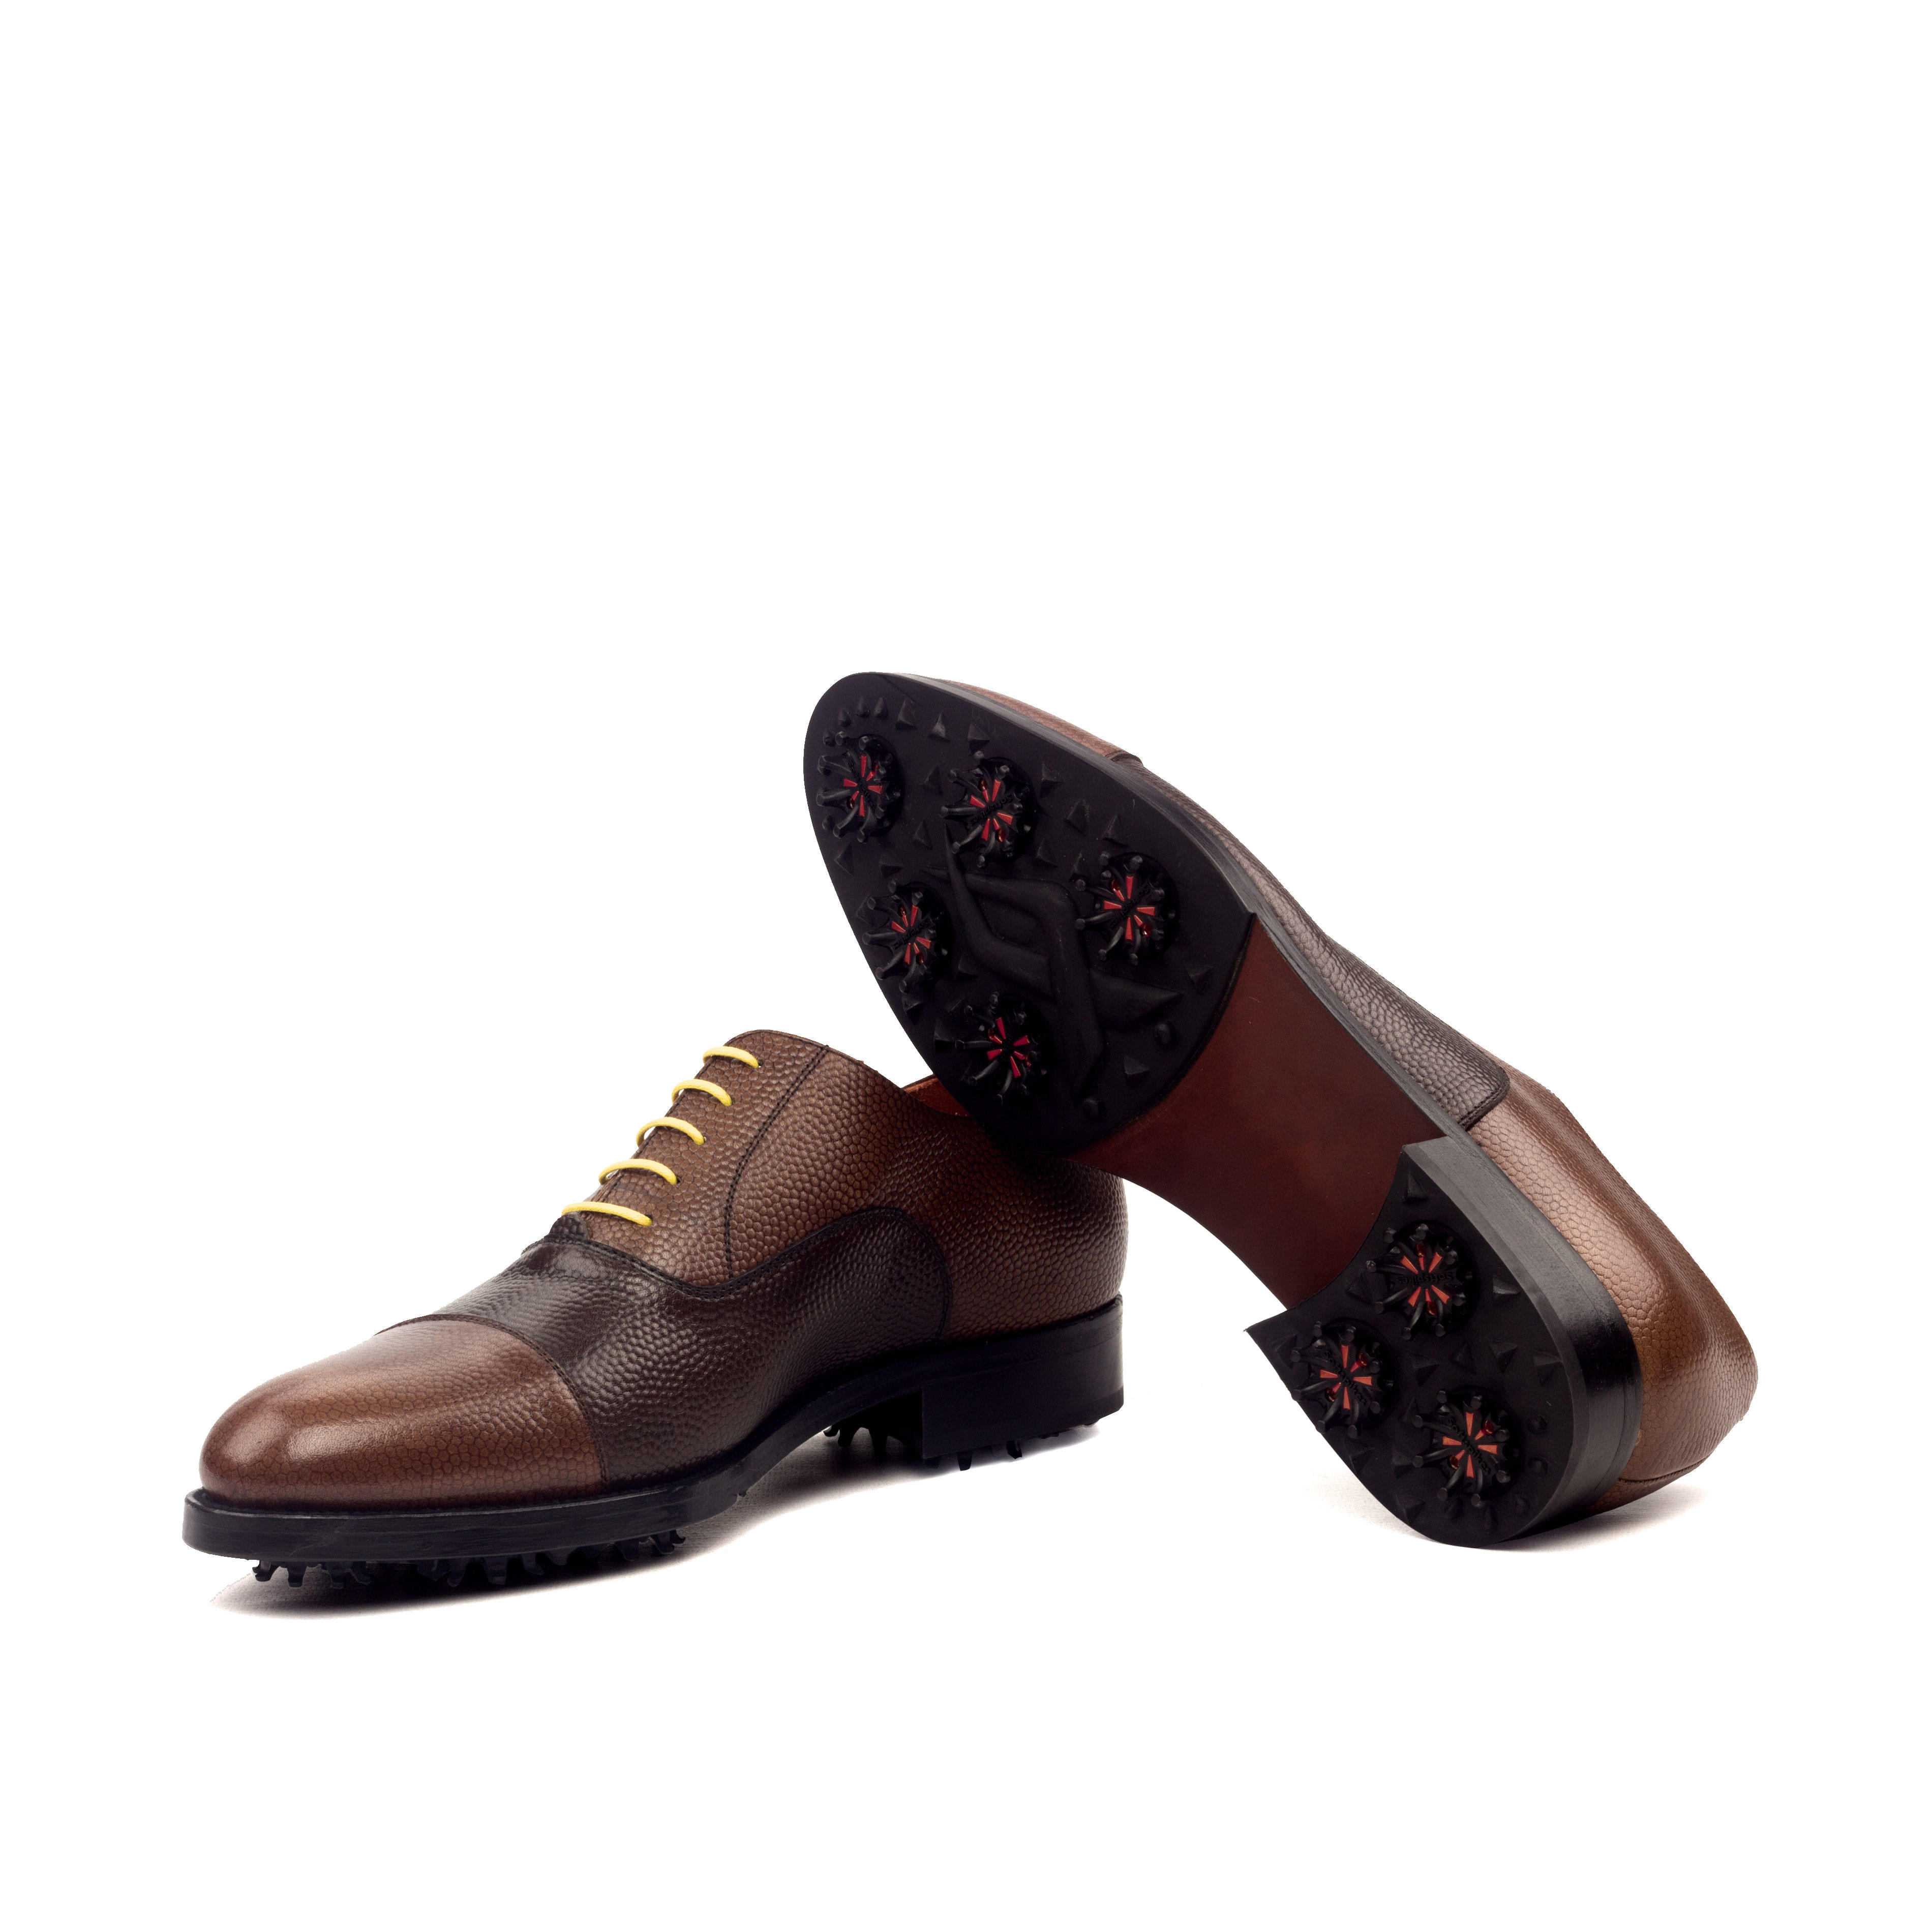 MANOR OF LONDON 'The Oxford' Two Tone Brown Pebble Grain Golfing Shoe Luxury Custom Initials Monogrammed Bottom Side View